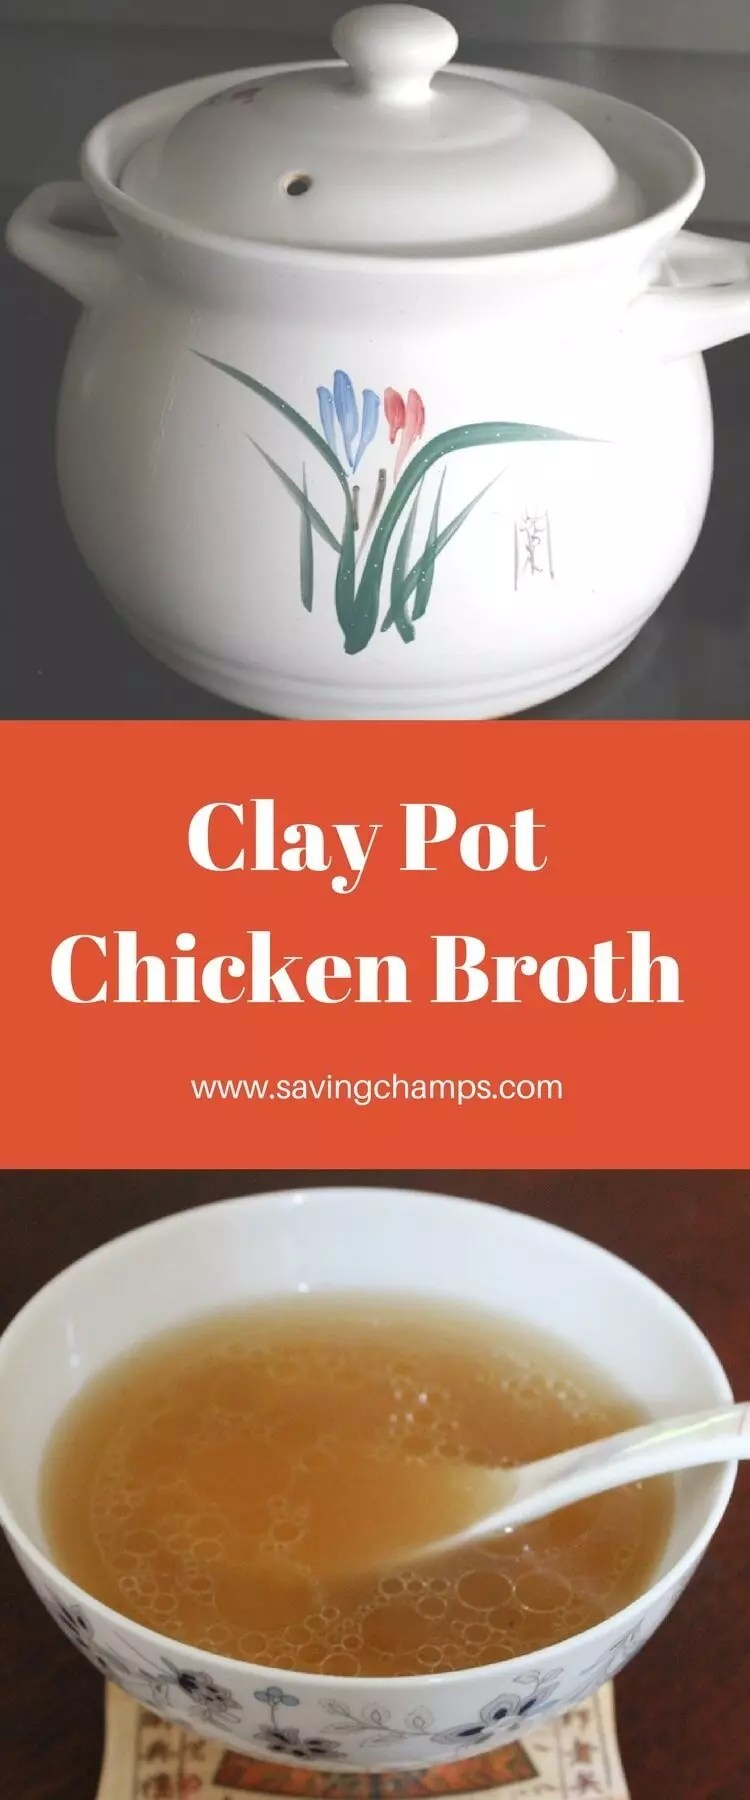 A recipe for clay pot chicken broth. Clay pots allow even heat distribution and slow gentle cooking, which can retain the best flavor and nutrition. clay pot chicken recipe; chicken broth; chicken soup; Chinese-style soup.